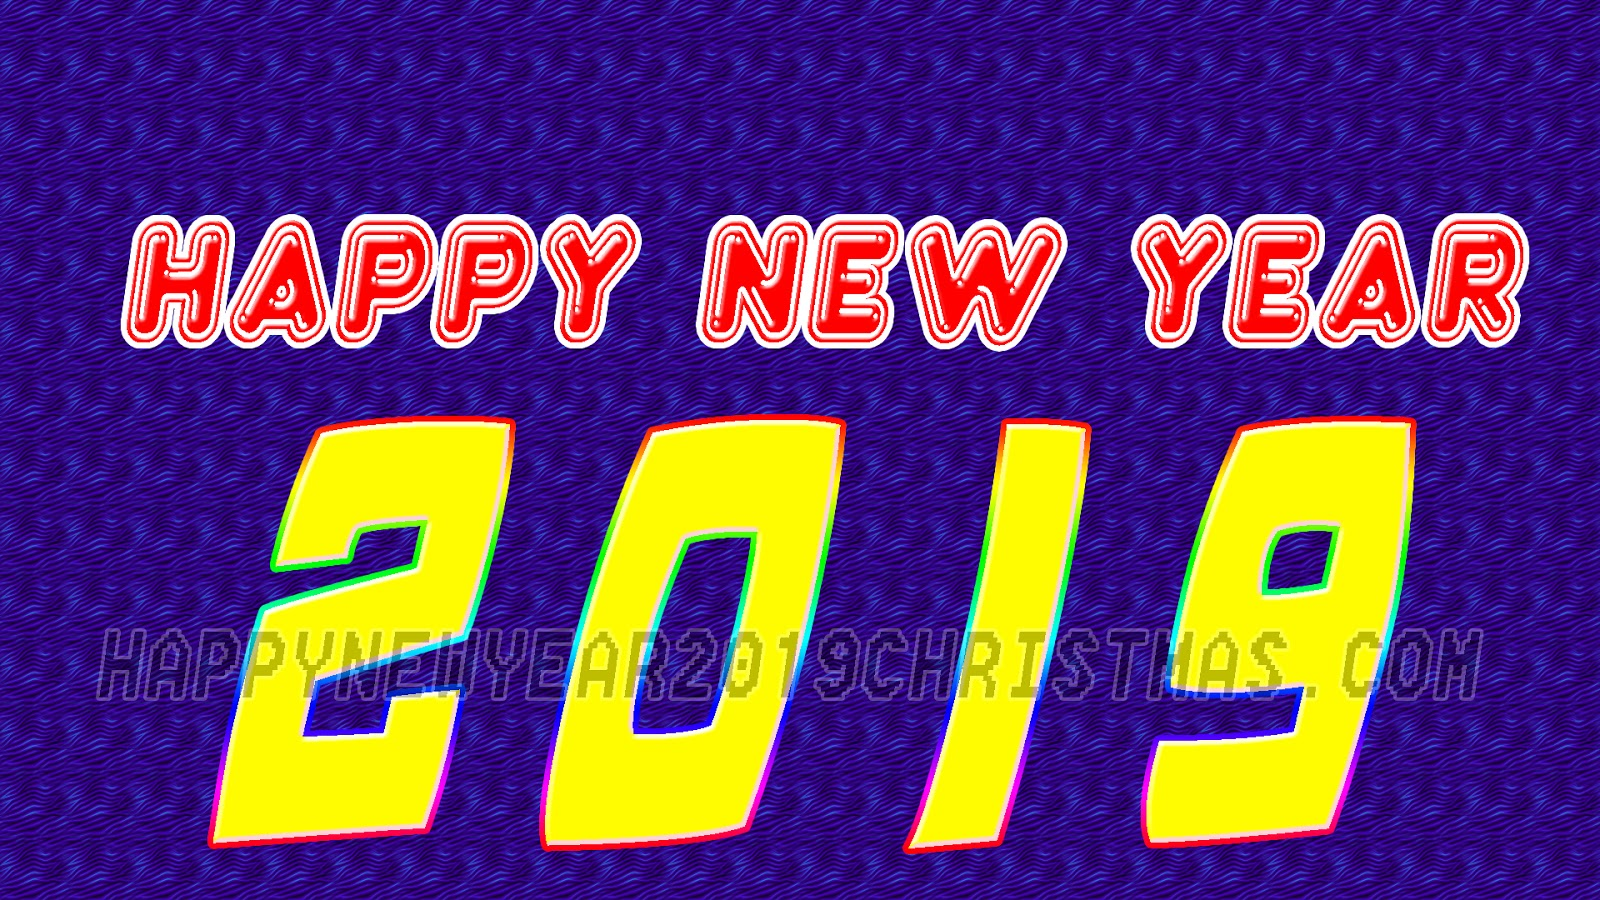 Happy New Year 2019 Messages Happy New Year 2019 Images Christmas